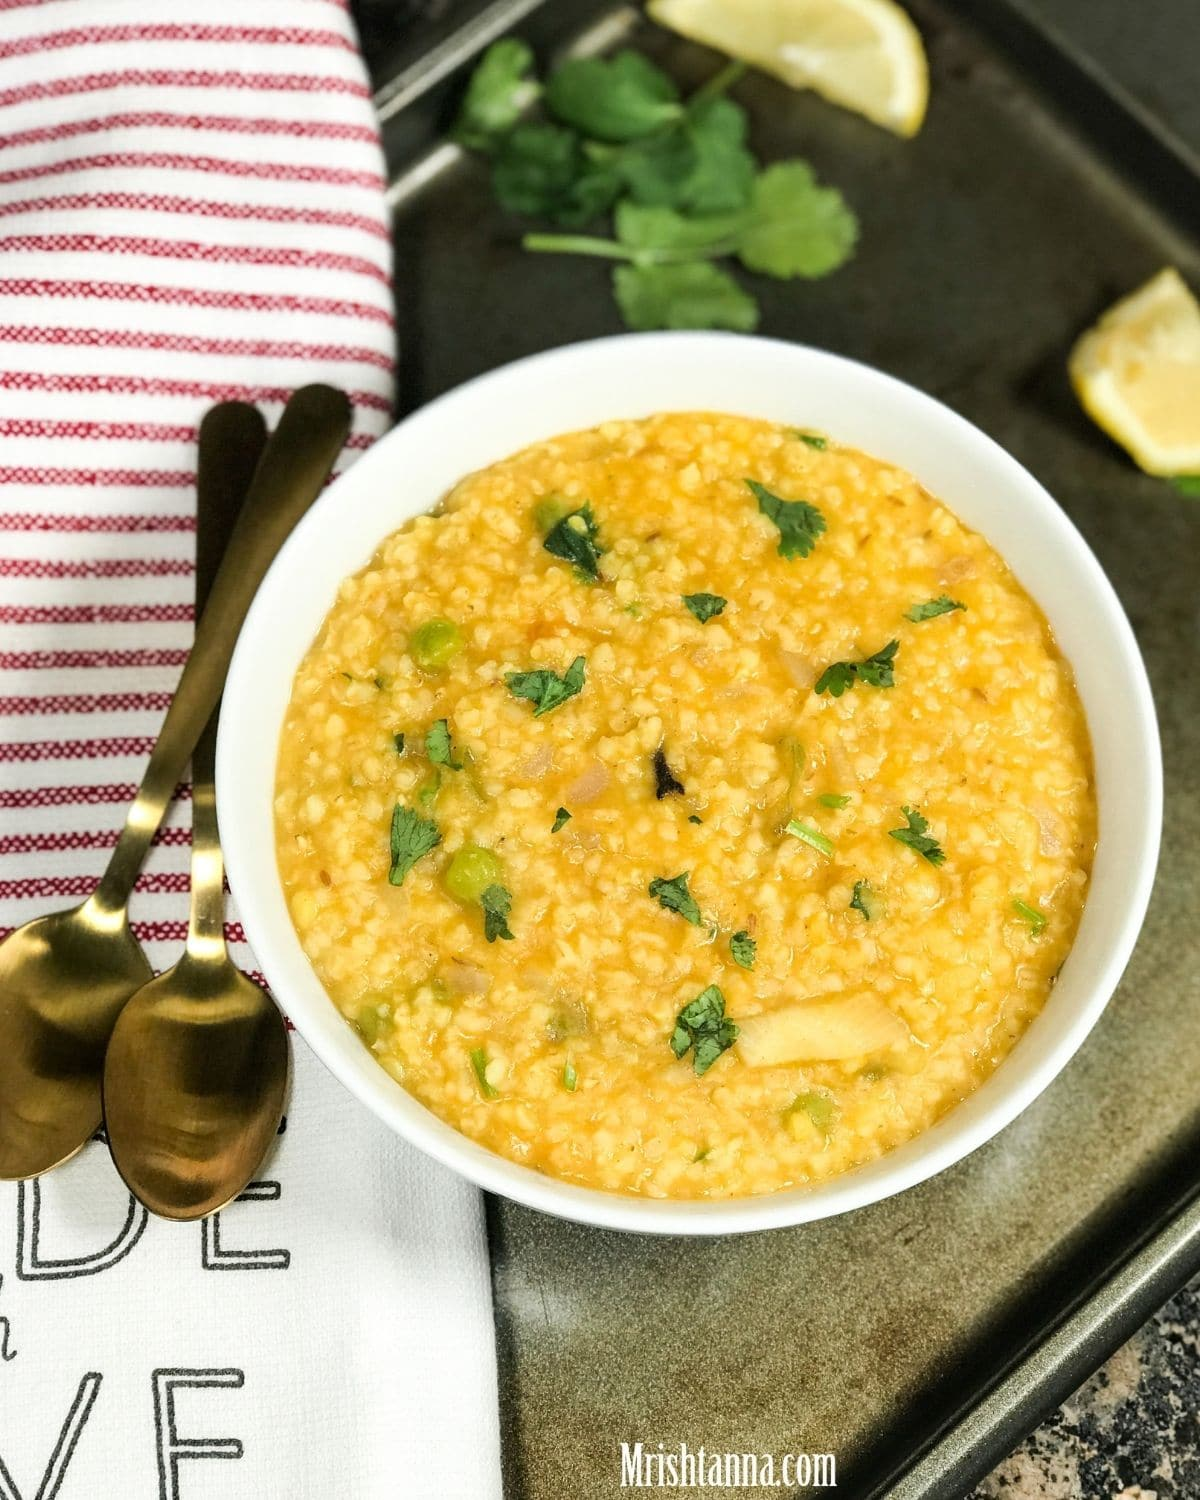 A white bowl with dalia khicdi and garnished with cilantro and lemon slices